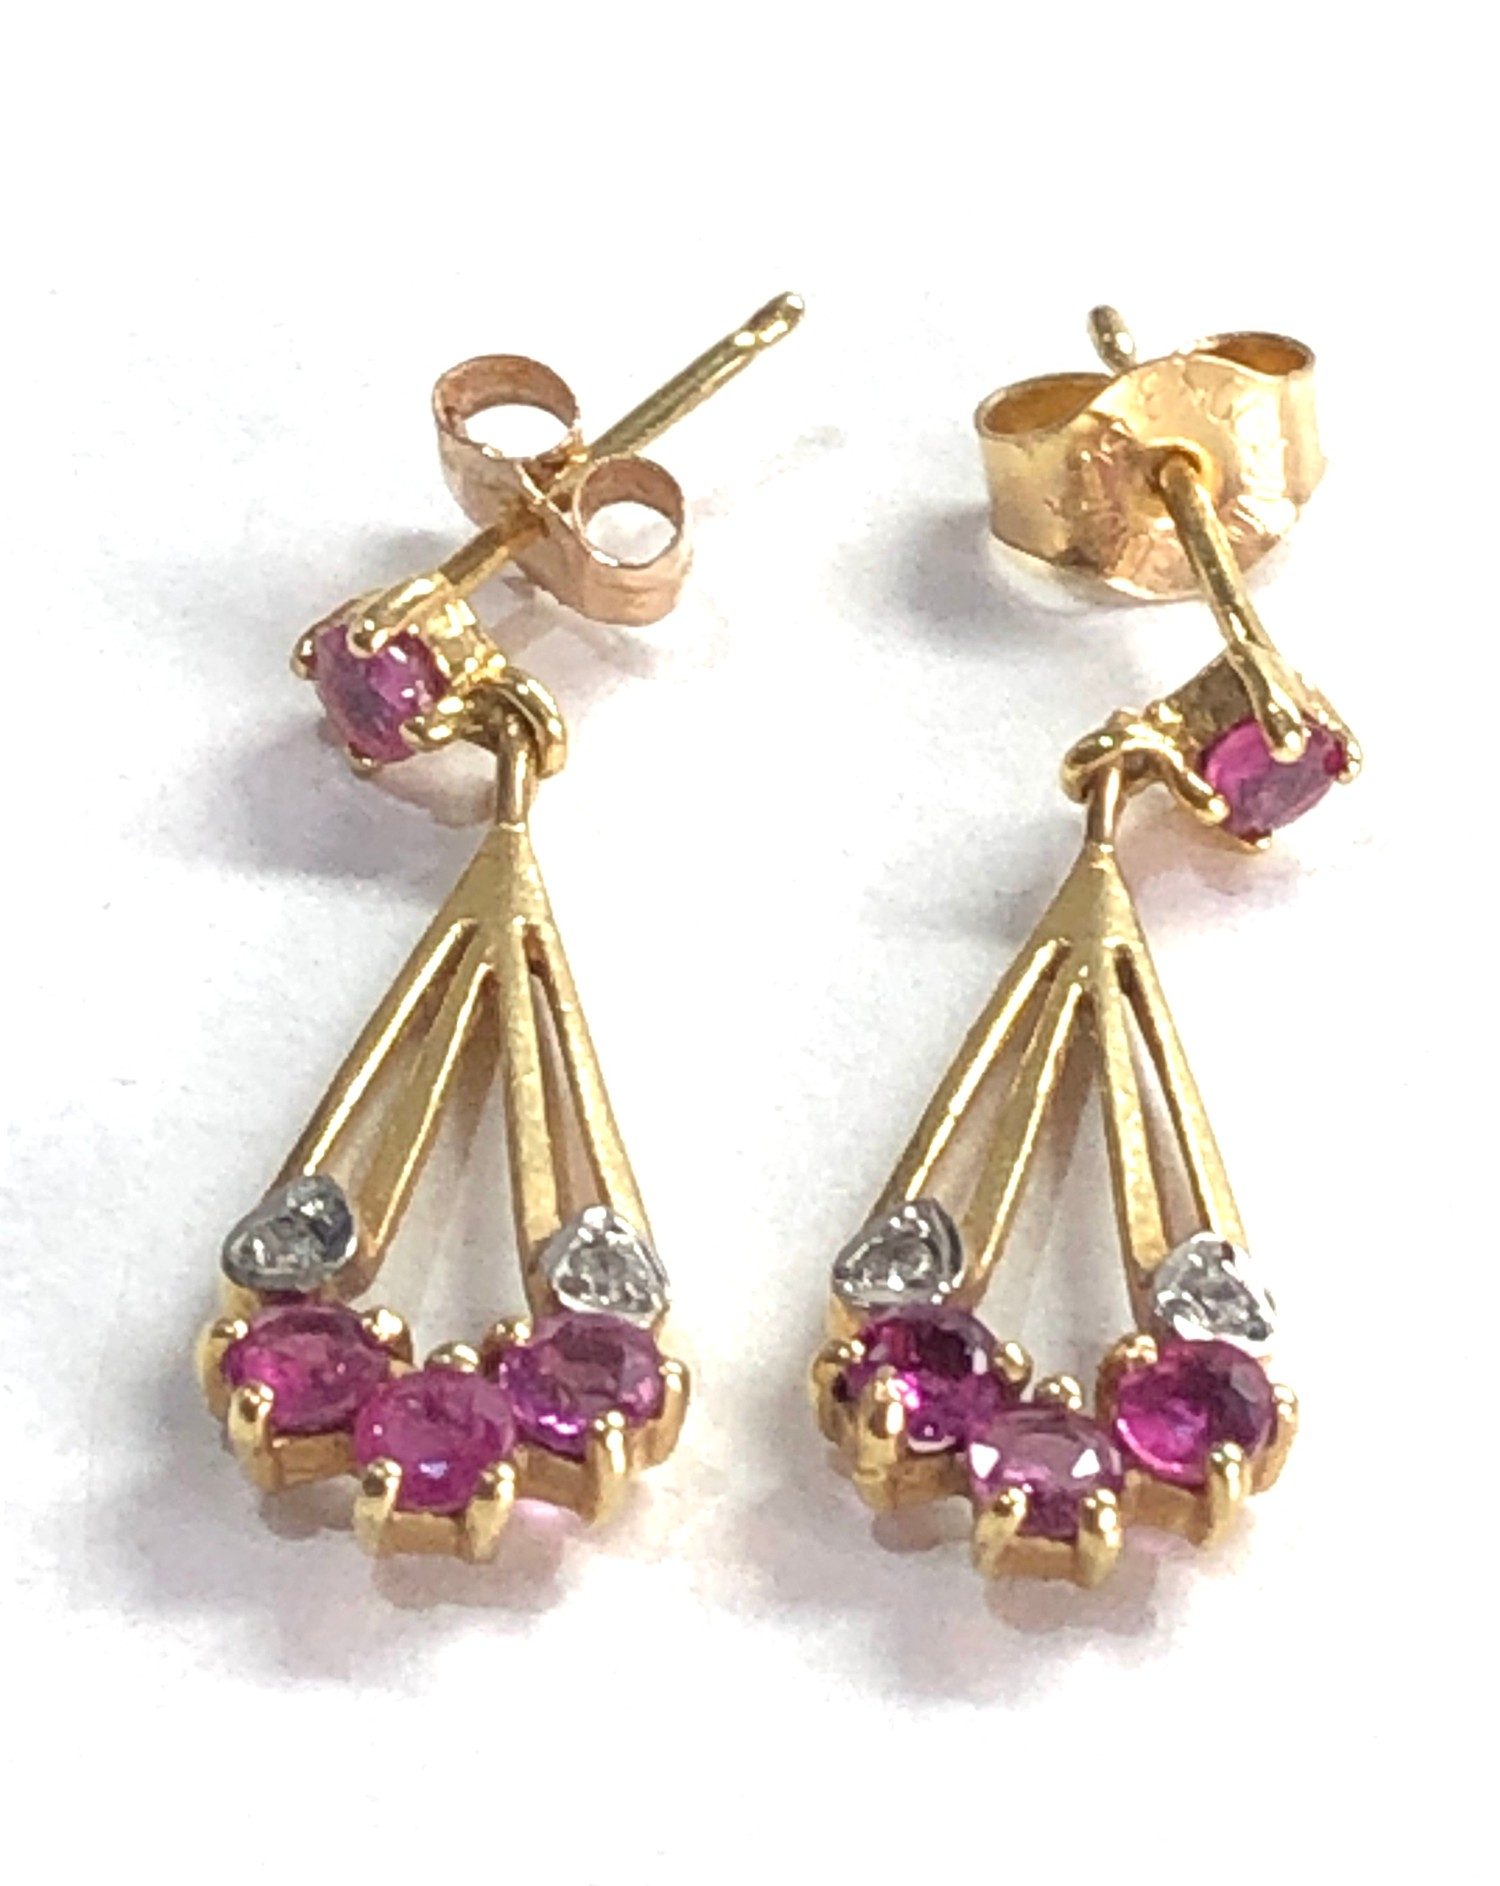 9ct gold diamond and ruby drop earrings - Image 2 of 3